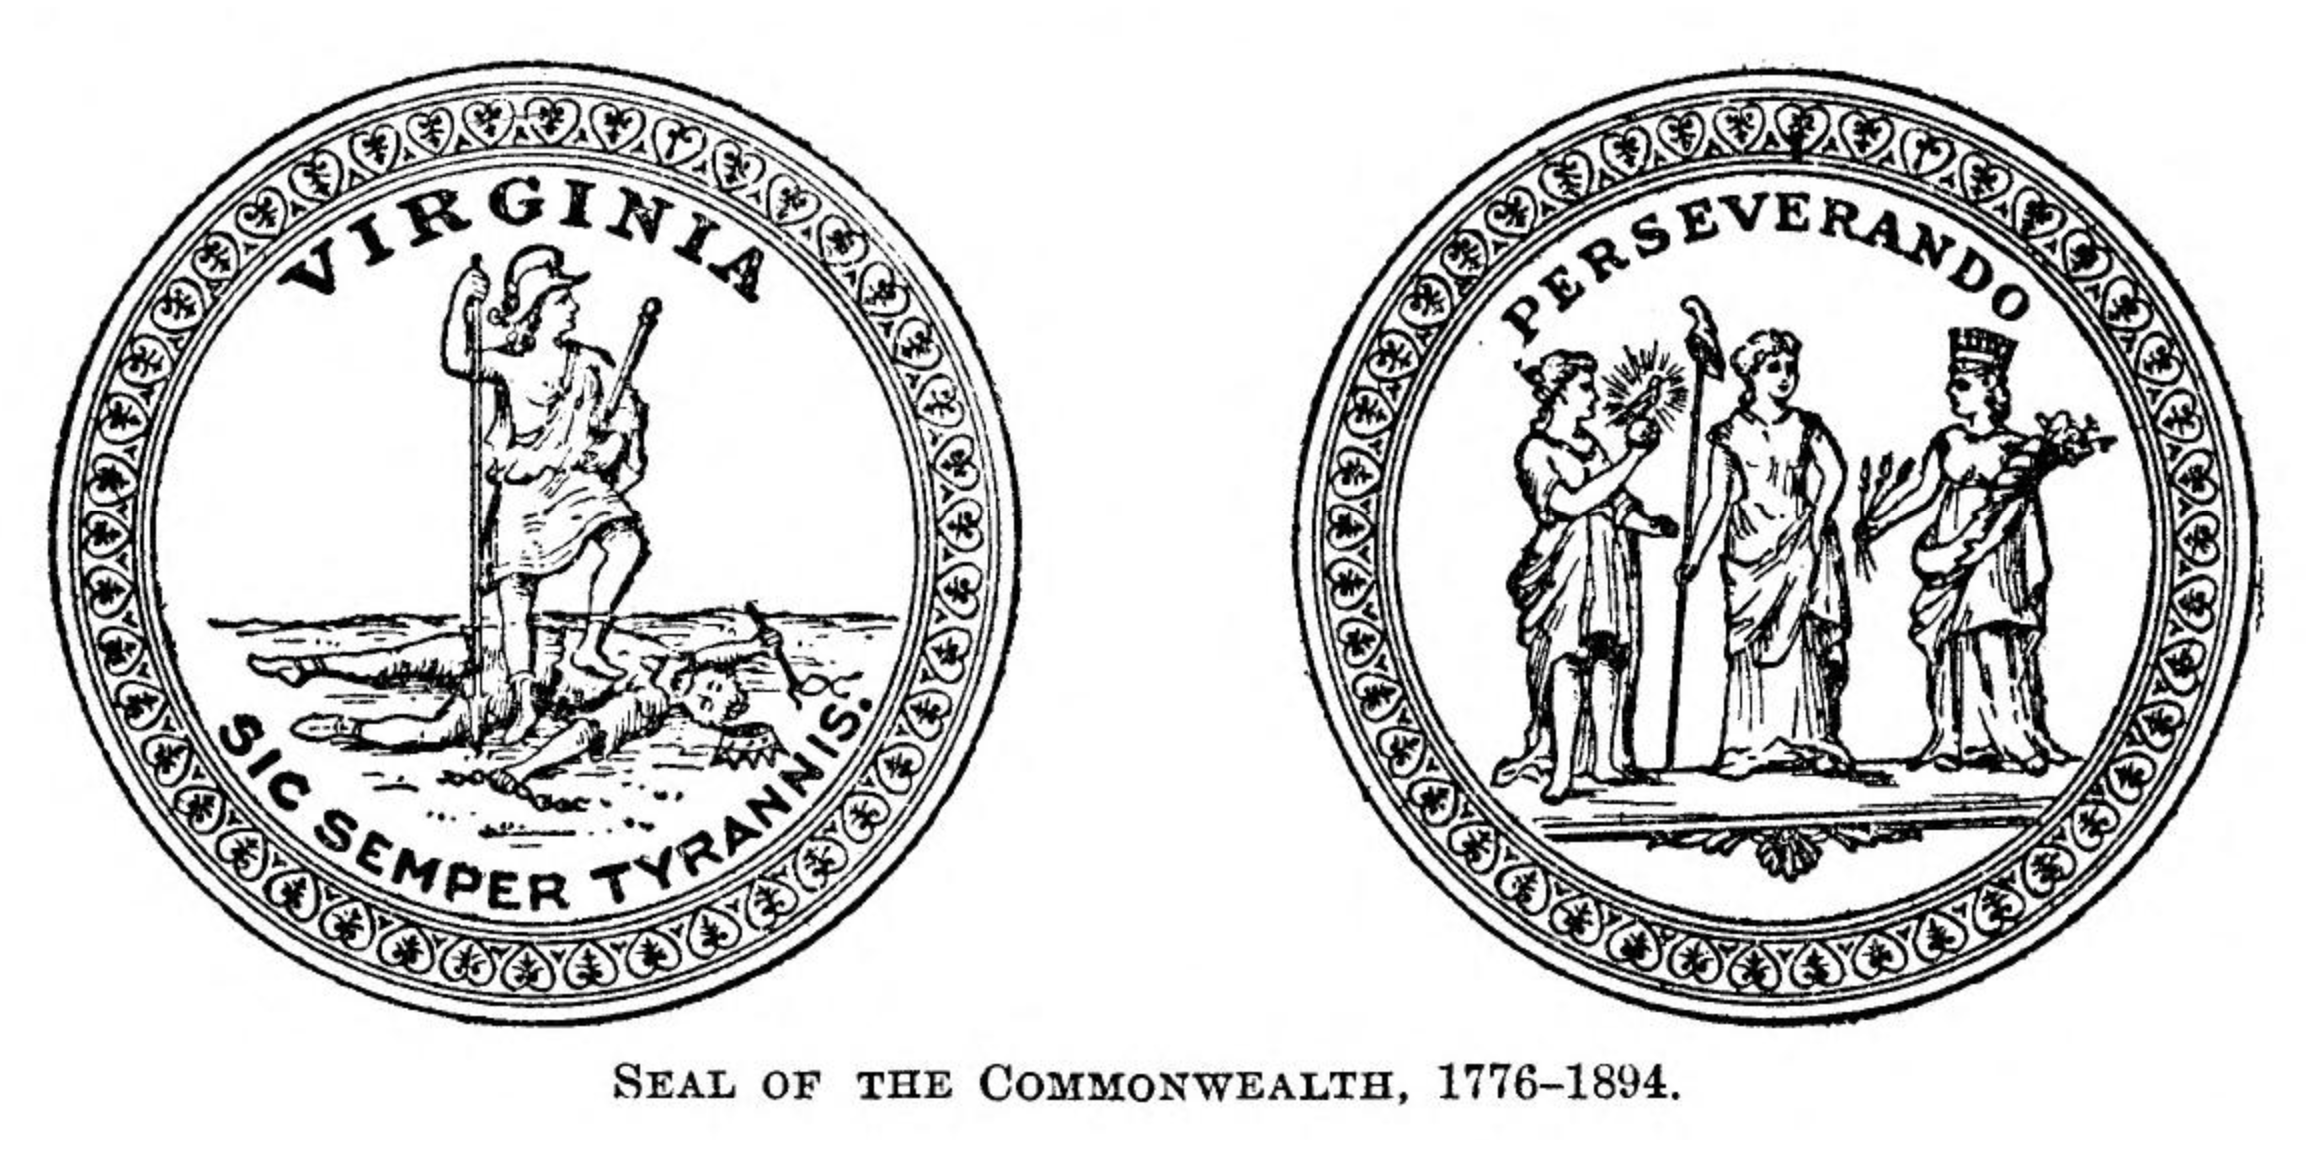 The seals of the Commonwealth of Virginia